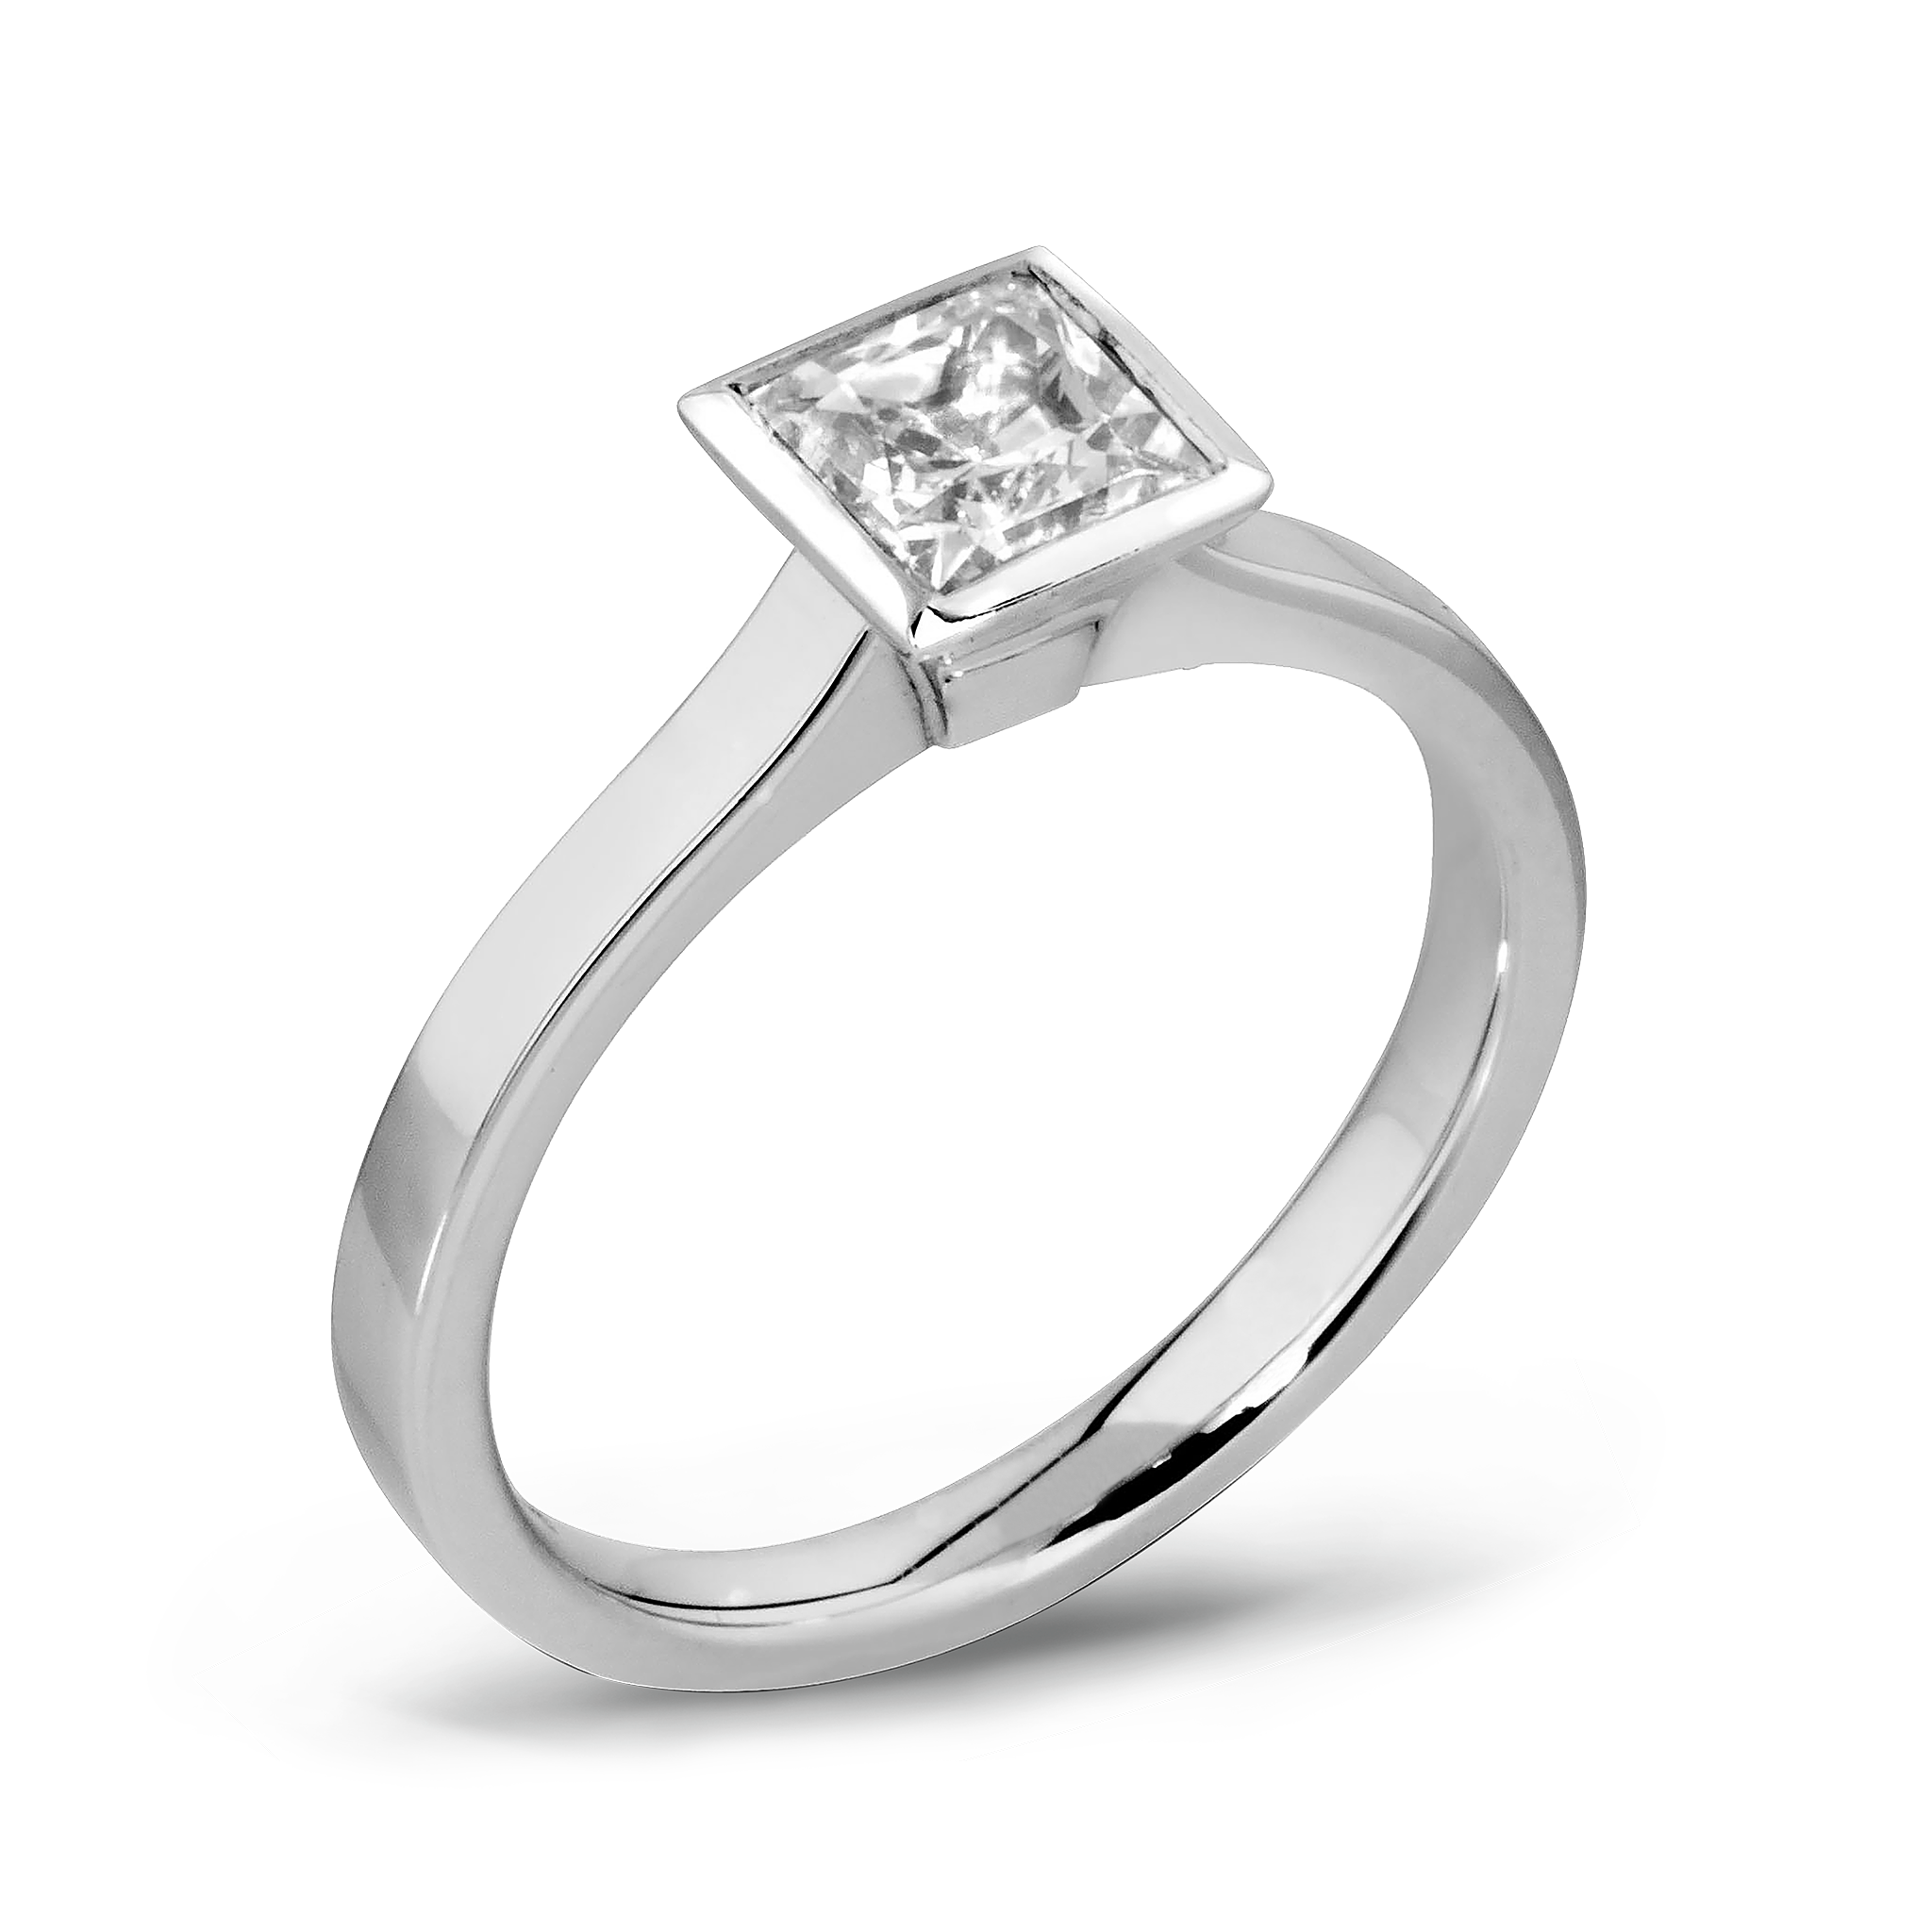 Princess Cut Diamond Fairtrade Gold Engagement Ring in 18K White Fairtrade Gold